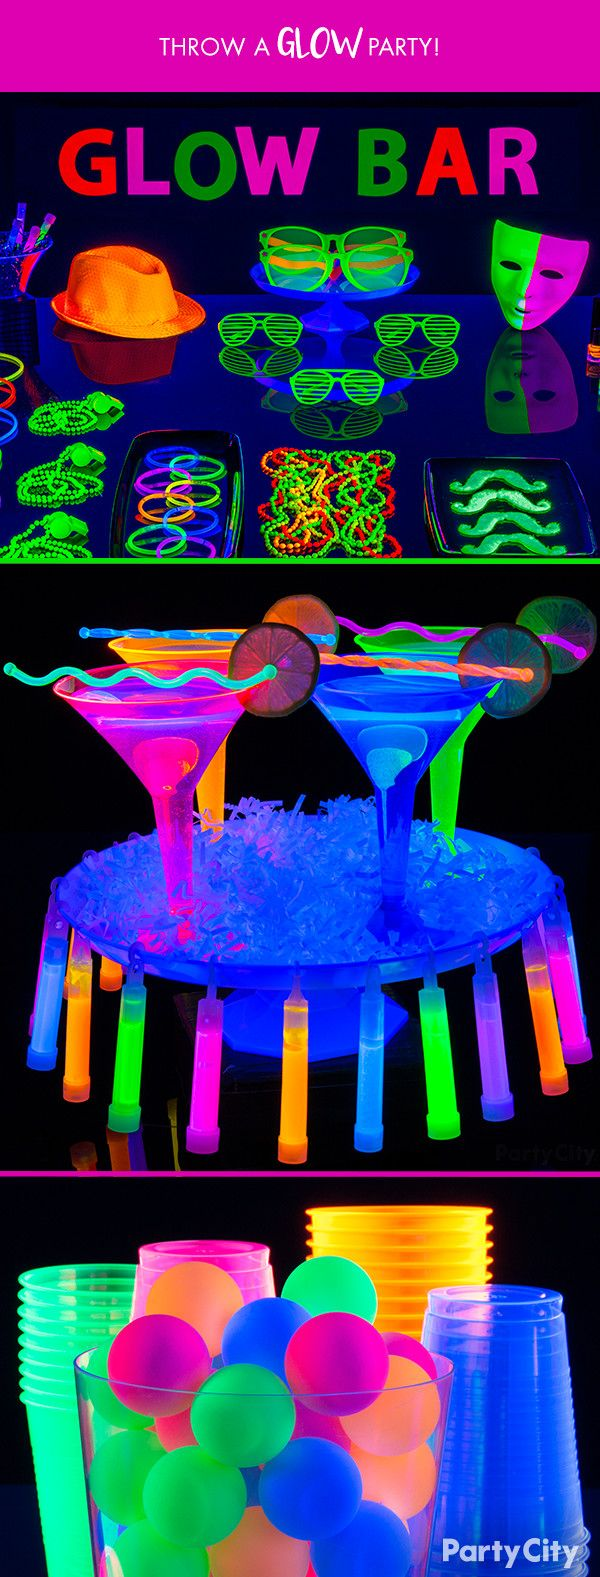 When the lights go out, the party's on. Let it glow all summer with glow sticks and drinkware from Party City! Throw a glow-in-the-dark party that will leave your guests with all the highlights. For added effect, illuminate your glow with fluorescent black lights.